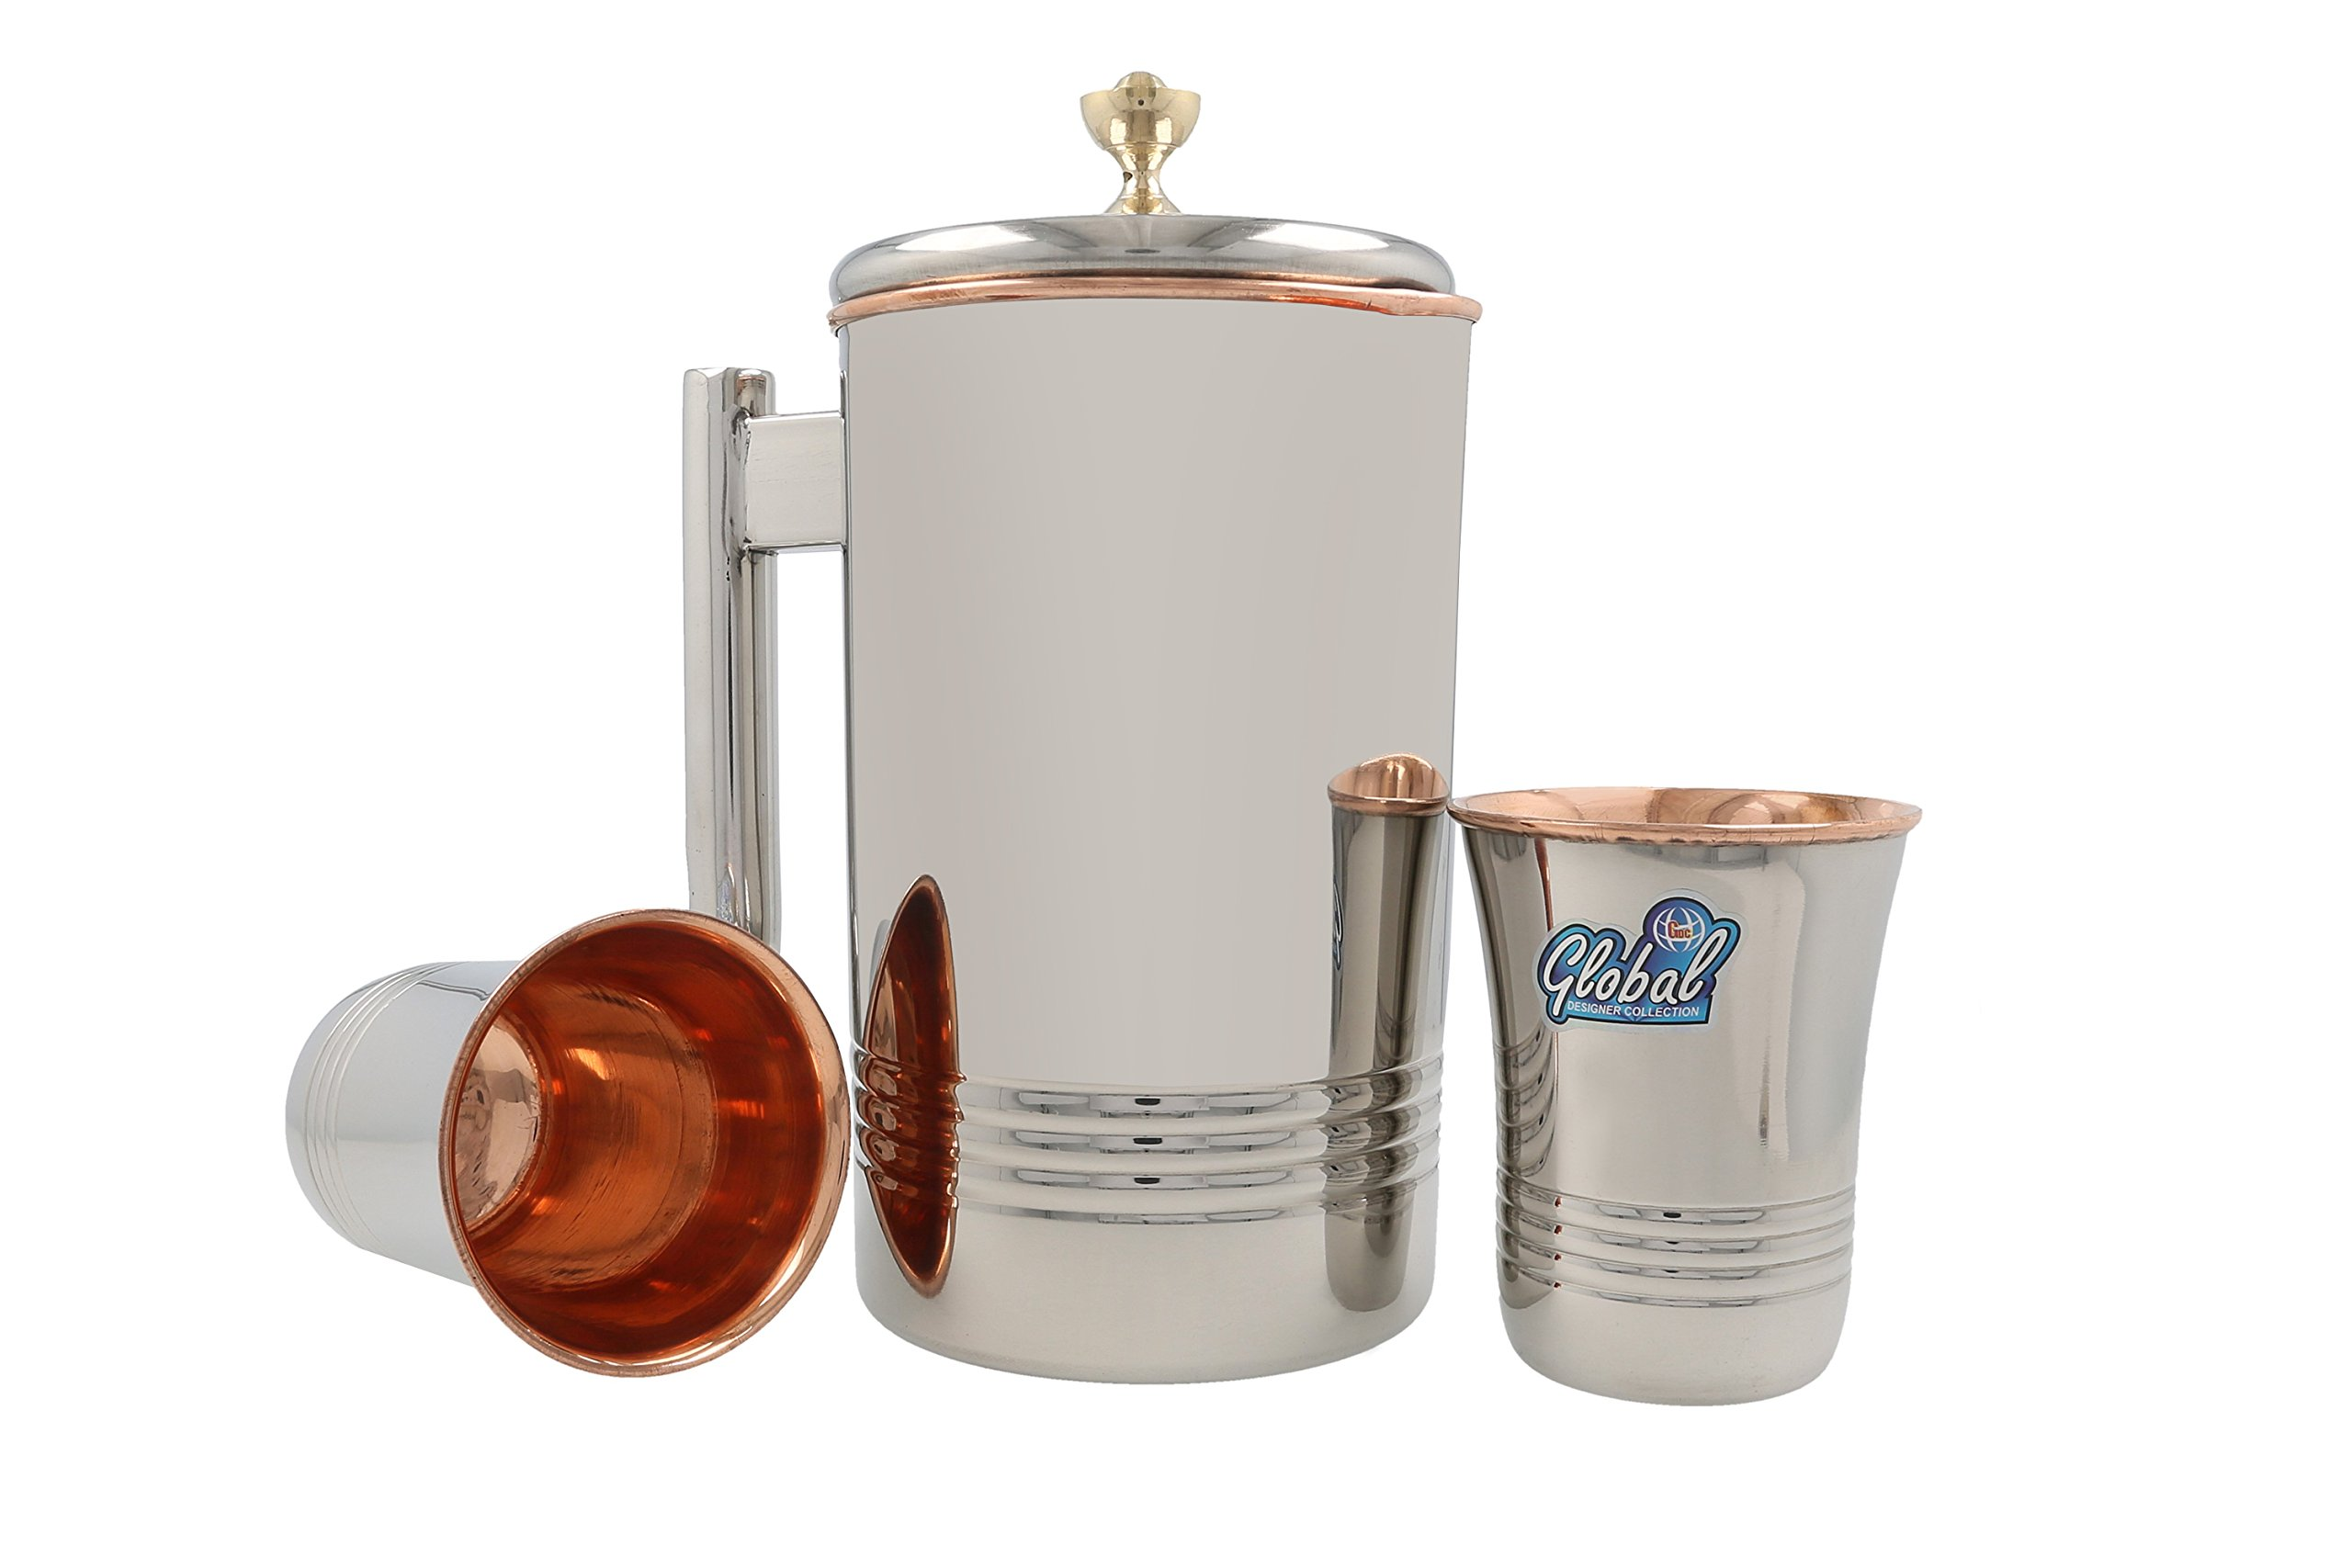 RawyalCrafts 100% Outside Stainless Steel Inside Pure Copper Handcrafted Pitcher/Jug 50 Oz/1.5 Liters for Ayurveda Health Benefit with Set of 2 Stainless Steel Copper Glasses